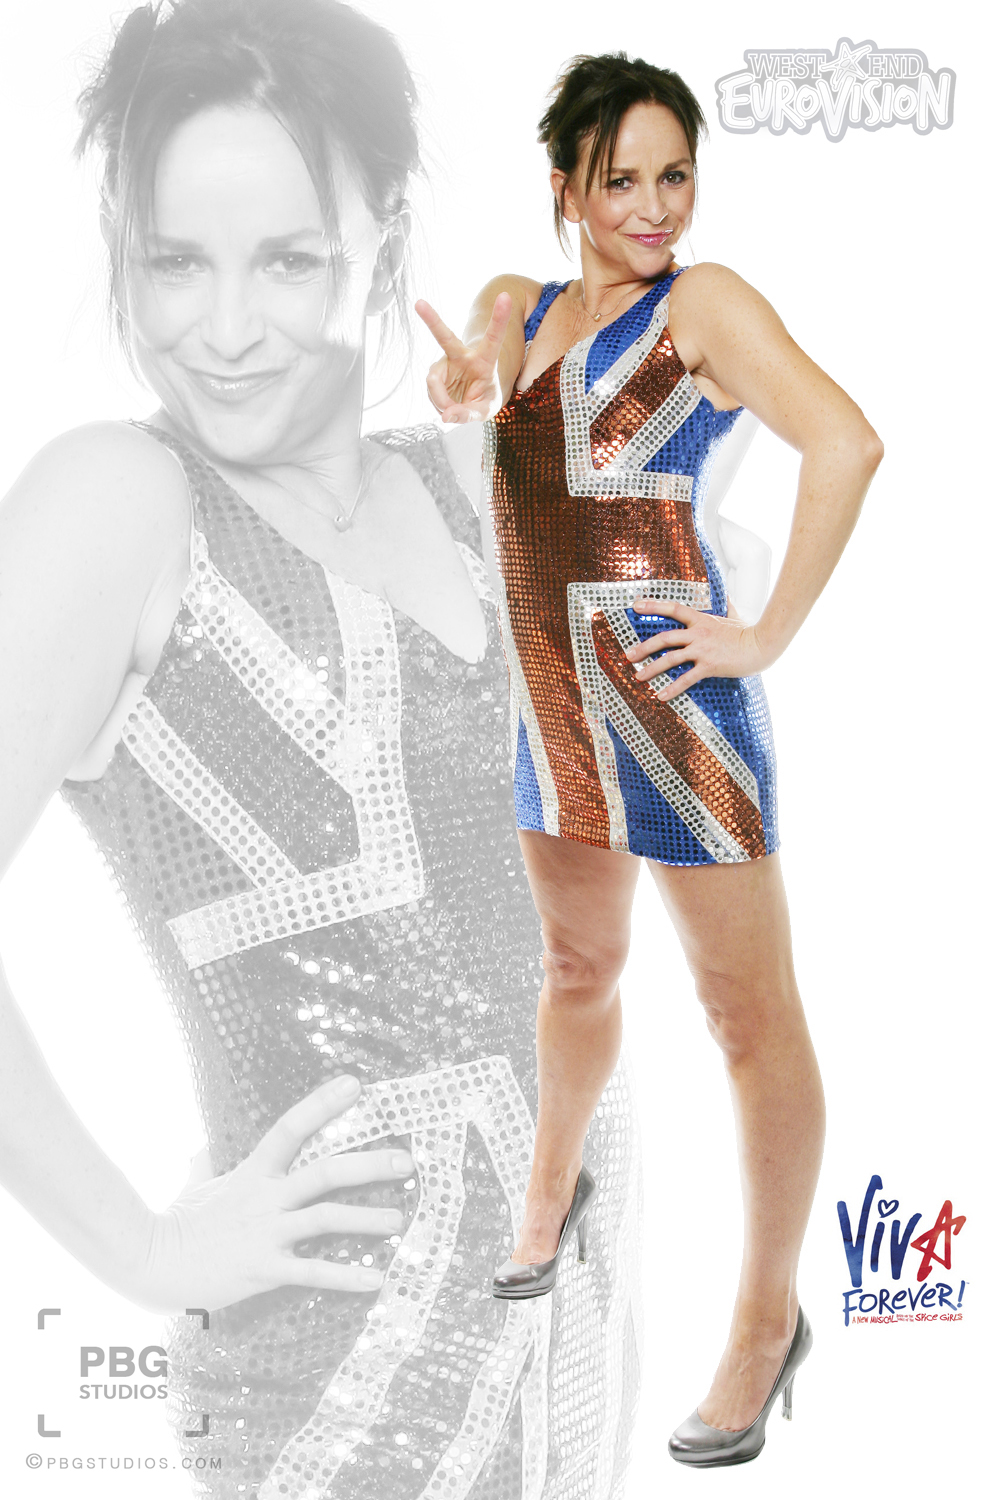 Sally Ann Triplett in Viva Forever costume (photographed at the Piccadilly Theatre) for West End Eurovision